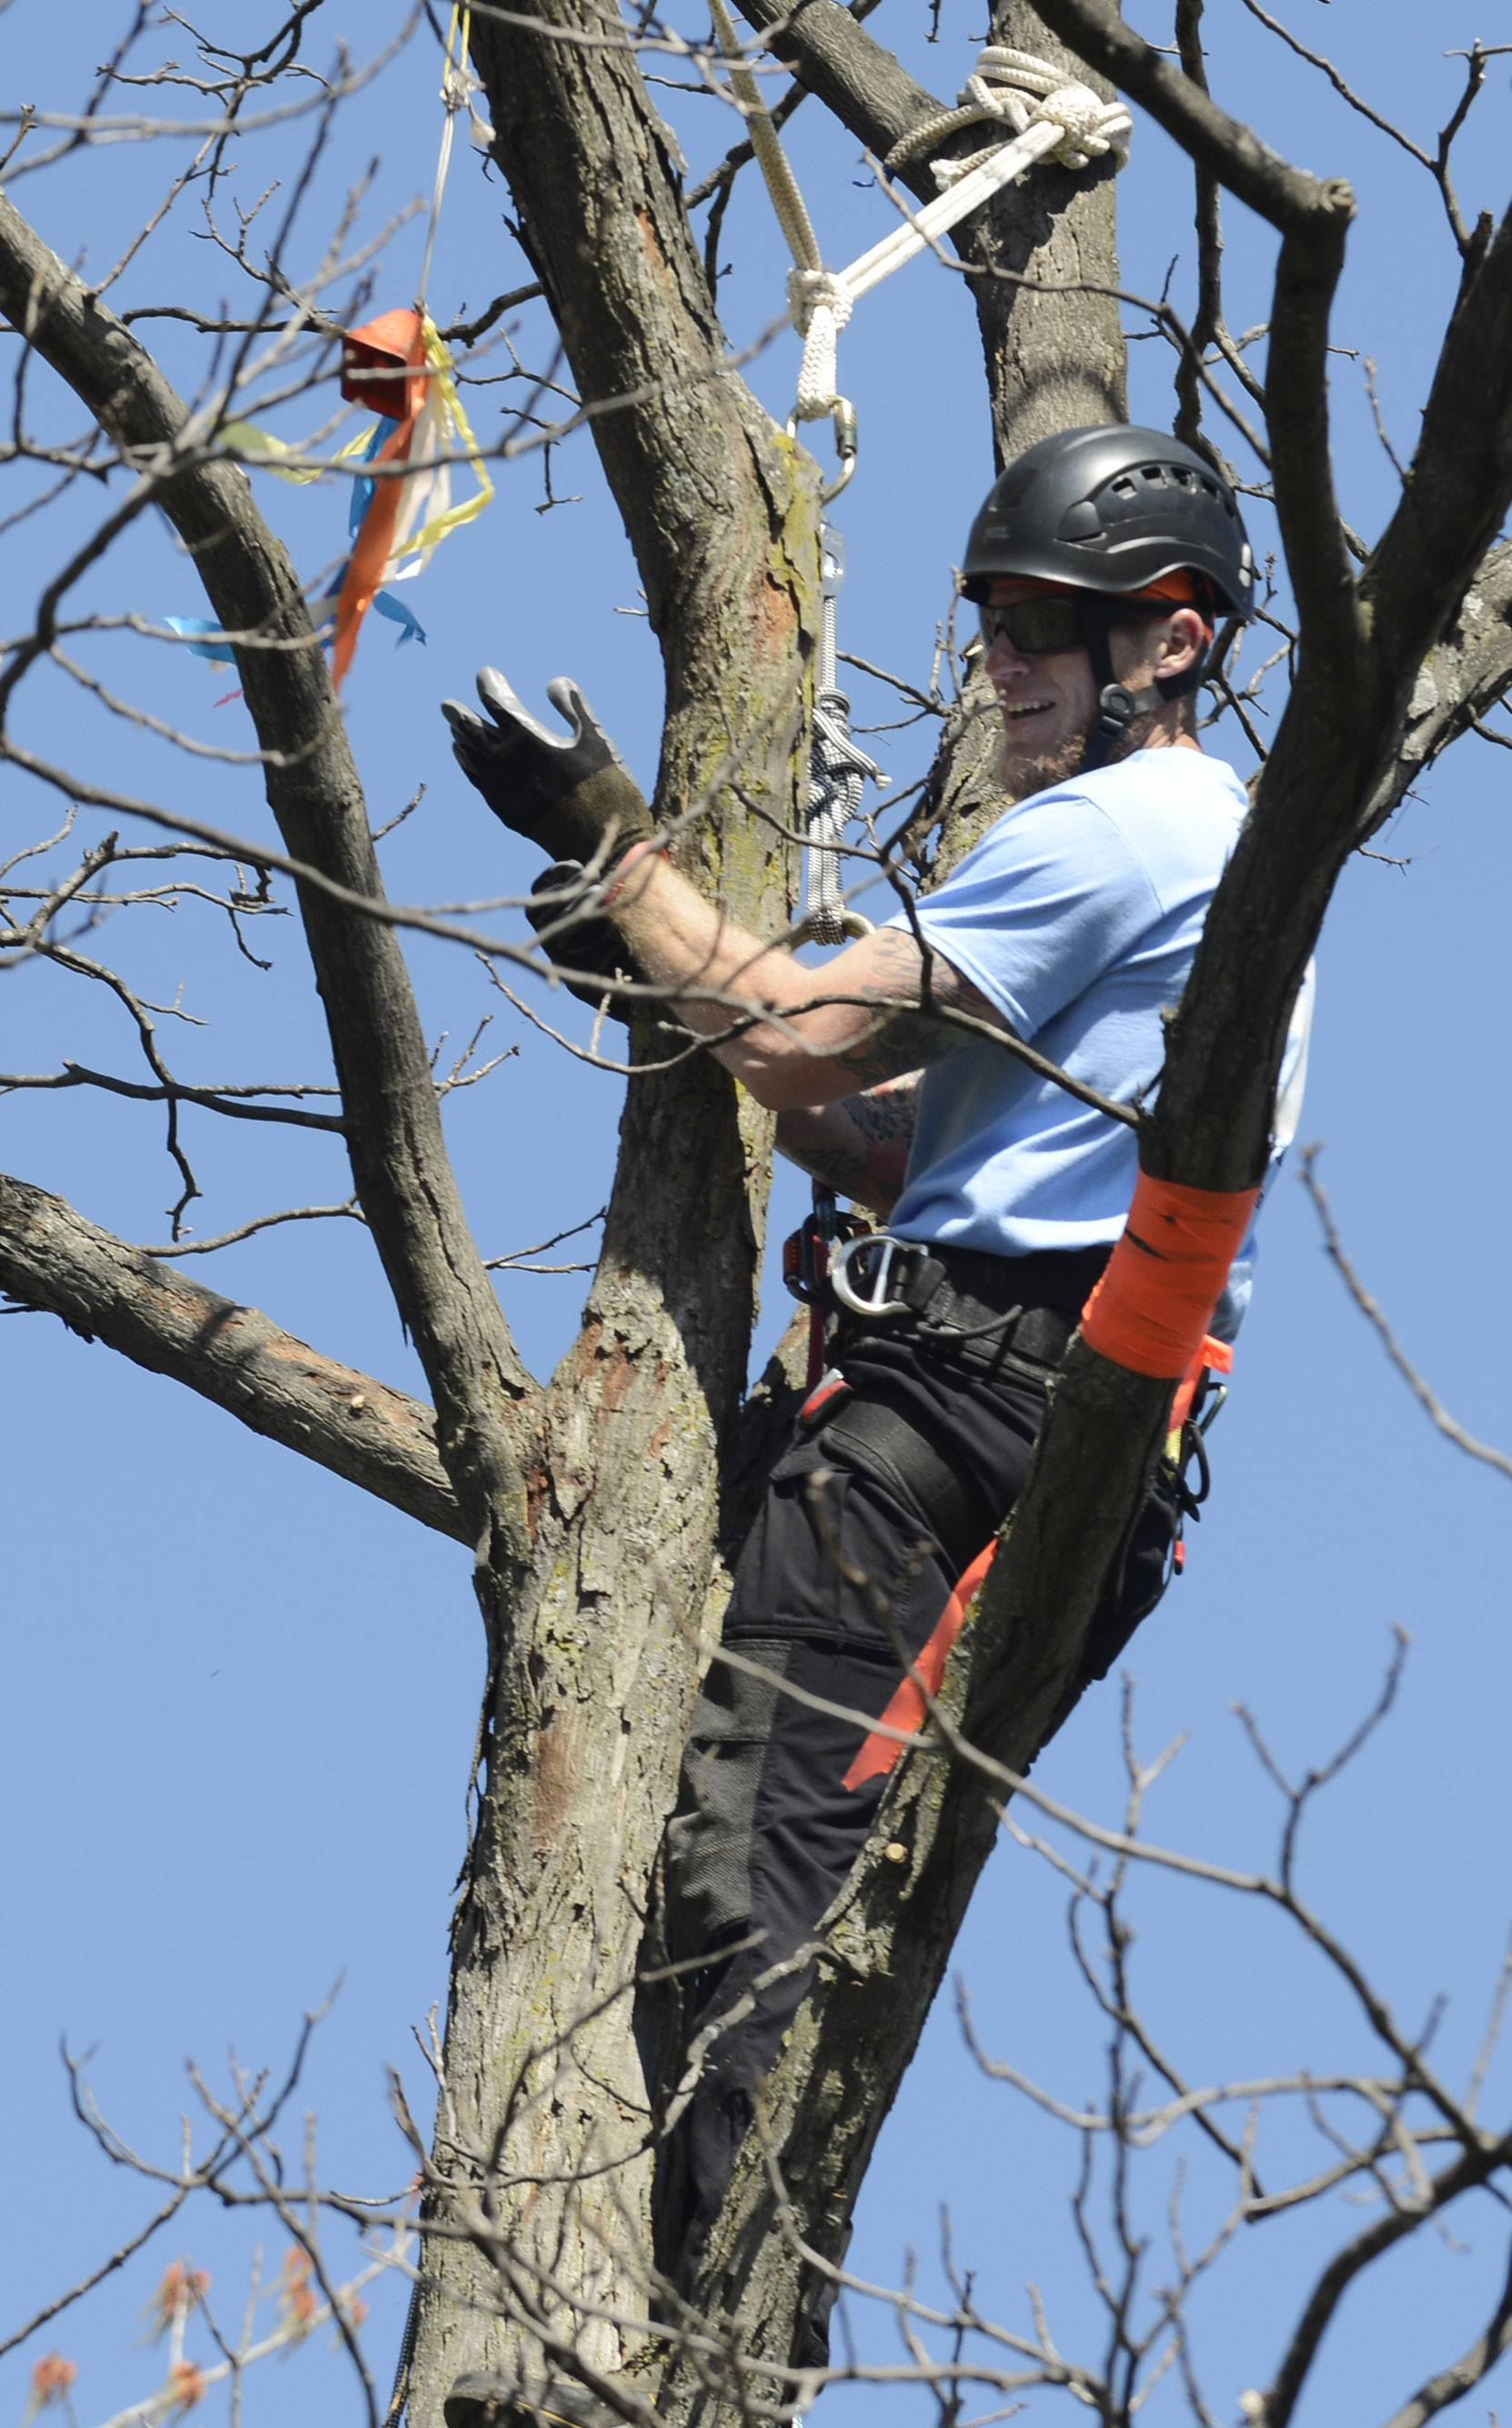 Jermy Dunivan of Infantree LLC, of Belleville, Ill., smiles after ringing the bell near the top of a tree while competing in the Belayed Speed Climb event Saturday during the Illinois Arborist Tree Climbing Championship held at Independence Grove near Libertyville.